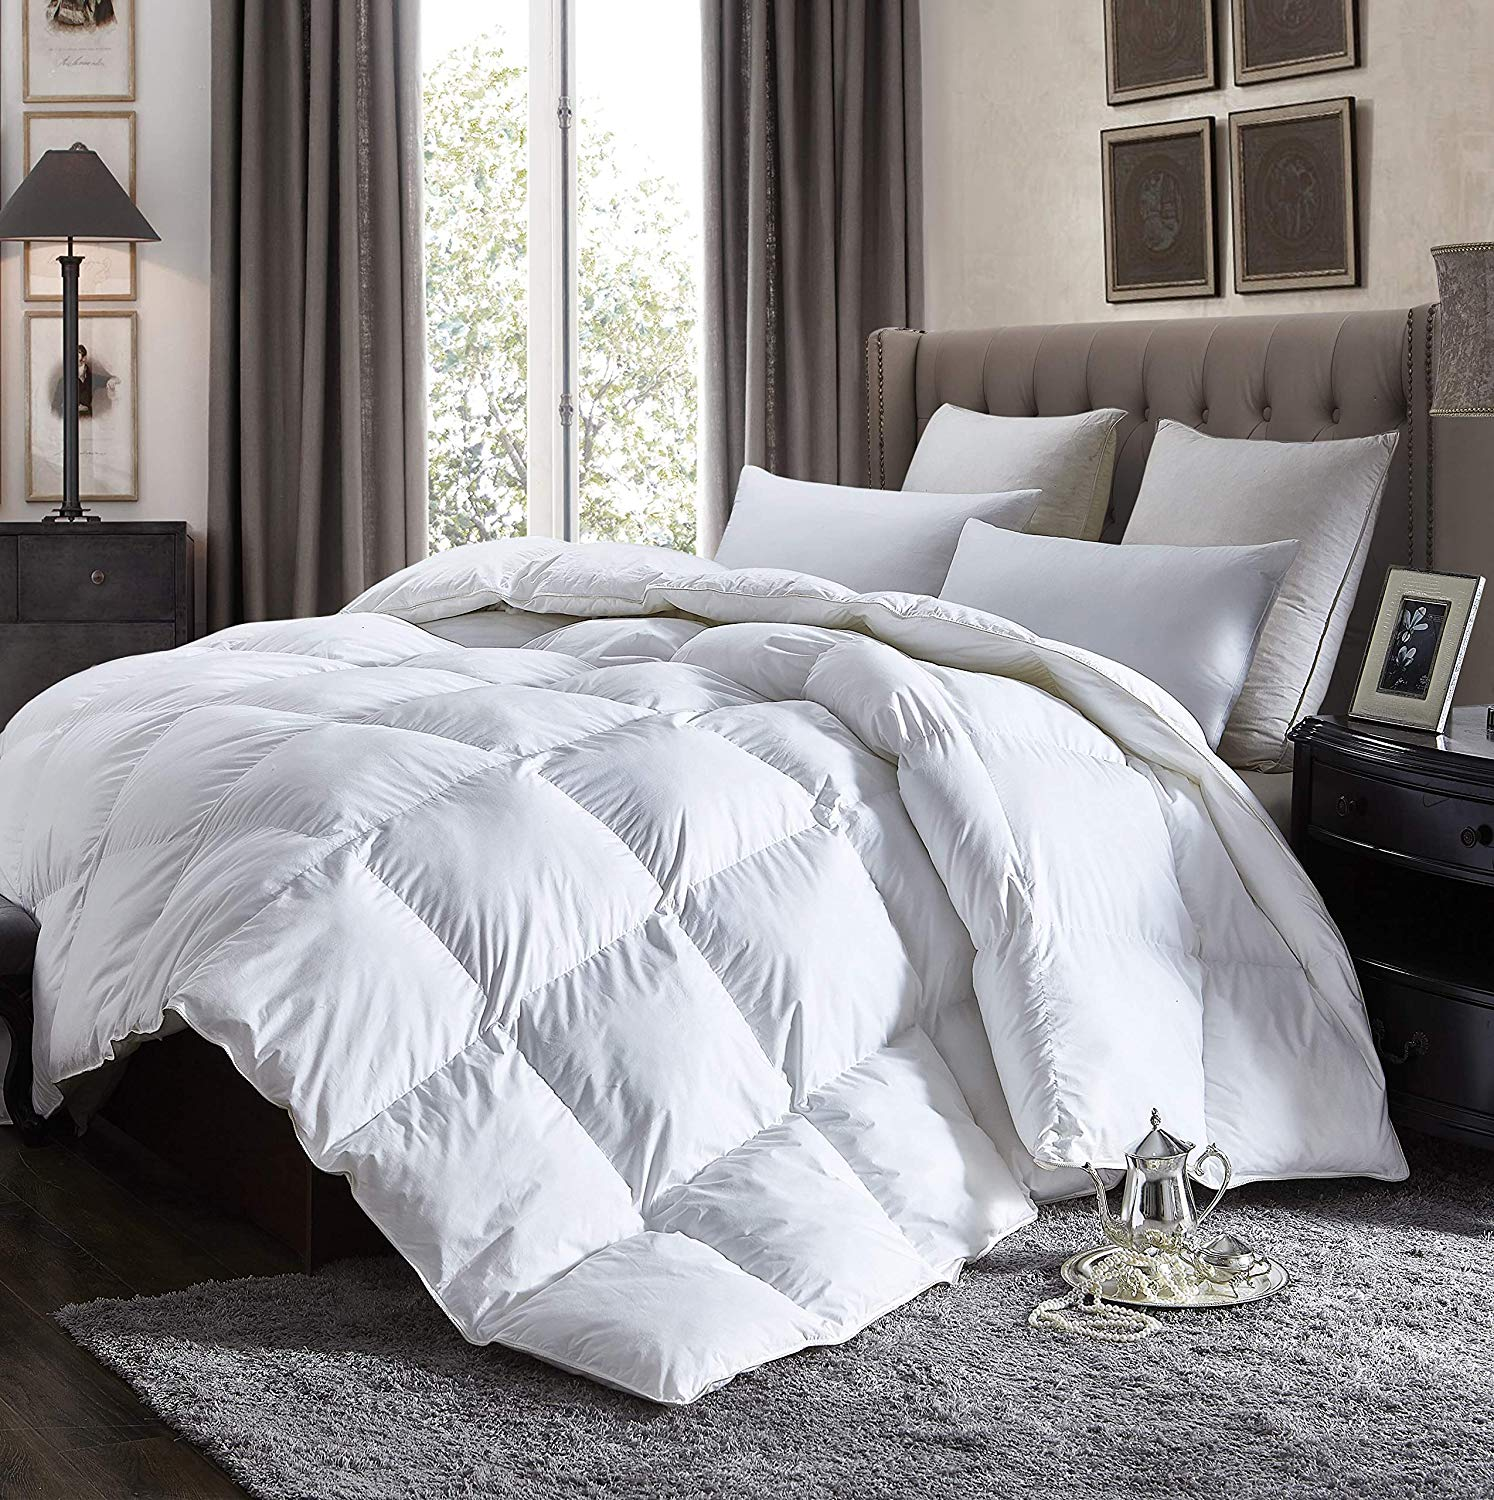 Egyptian Cotton Lightweight Comforter Review by www.snoremagazine.com